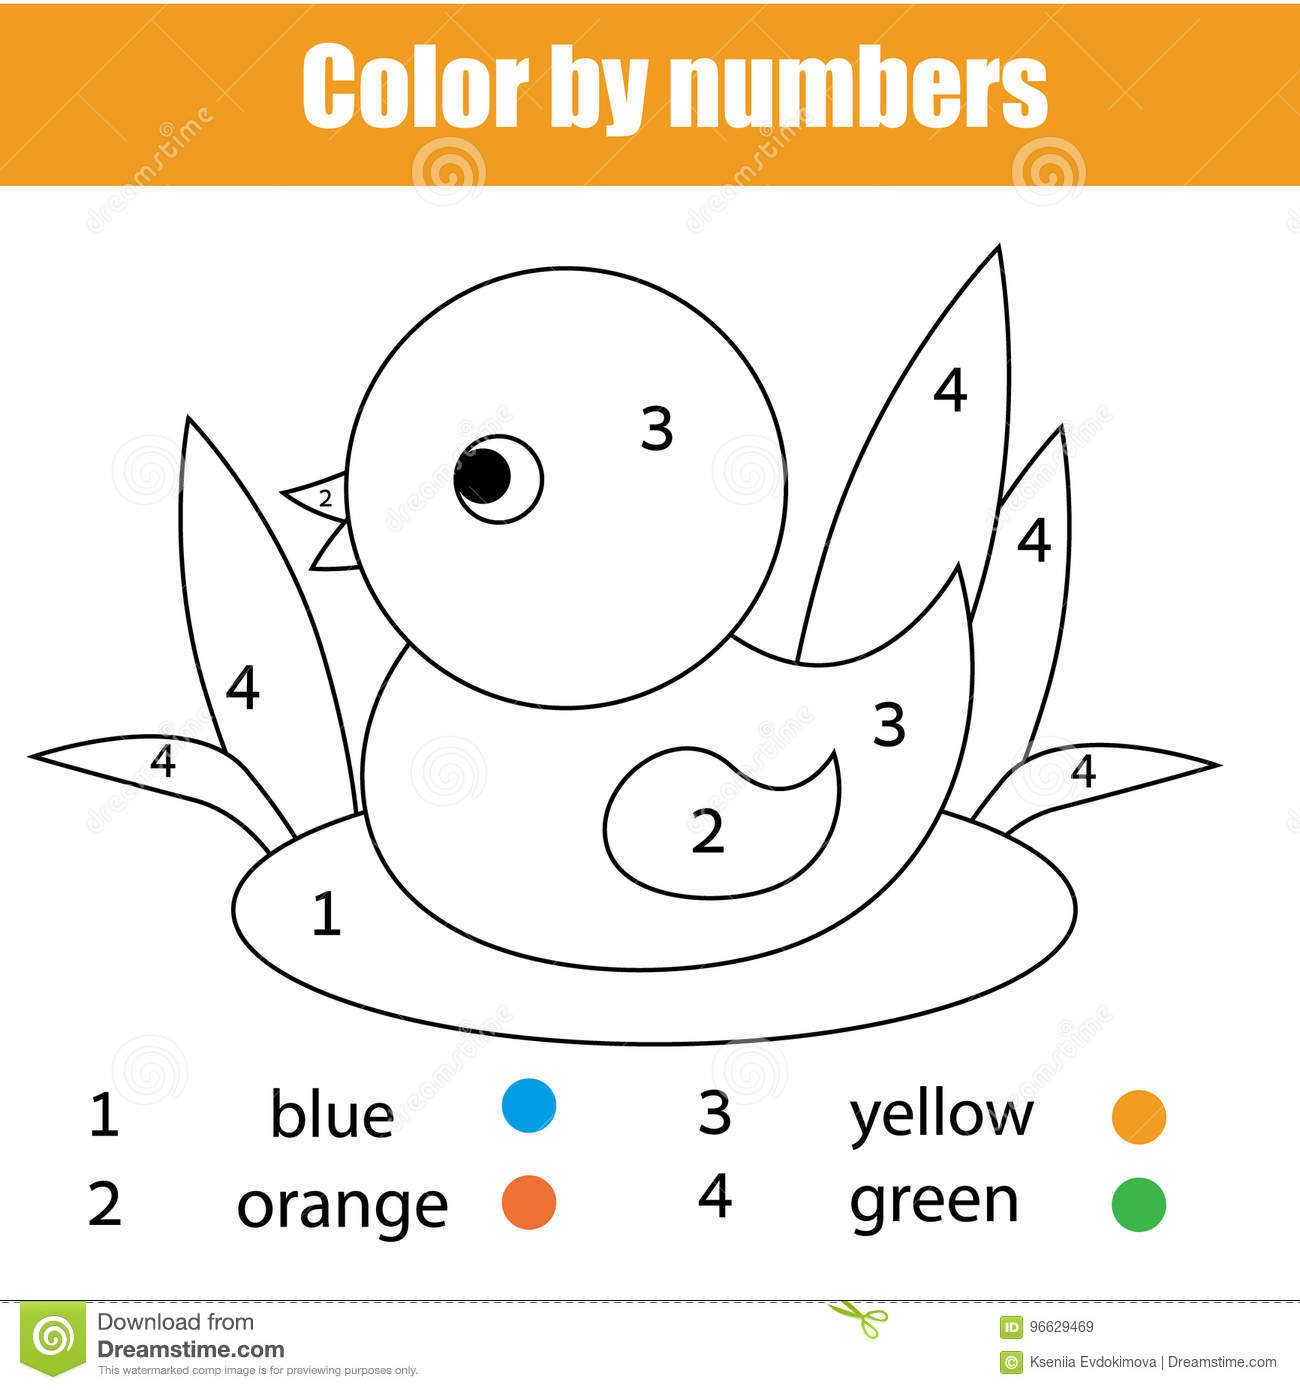 Coloring Page With Duck Bird Color By Numbers Educational Children Game Drawing Kids Activity